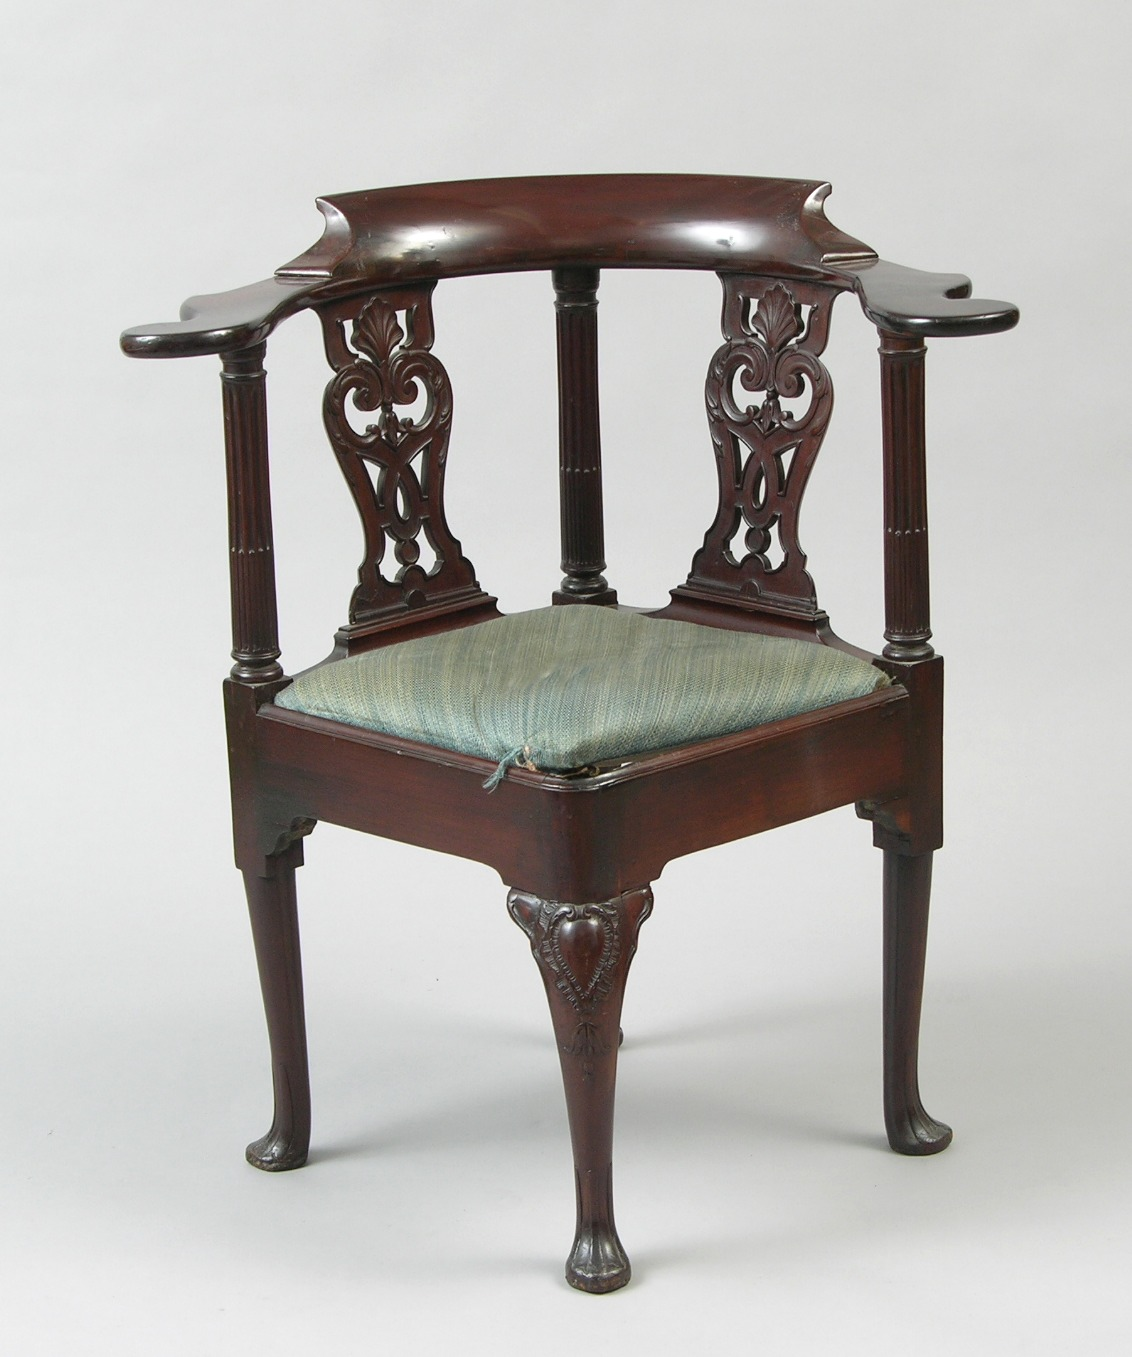 A George III Mahogany Corner Chair